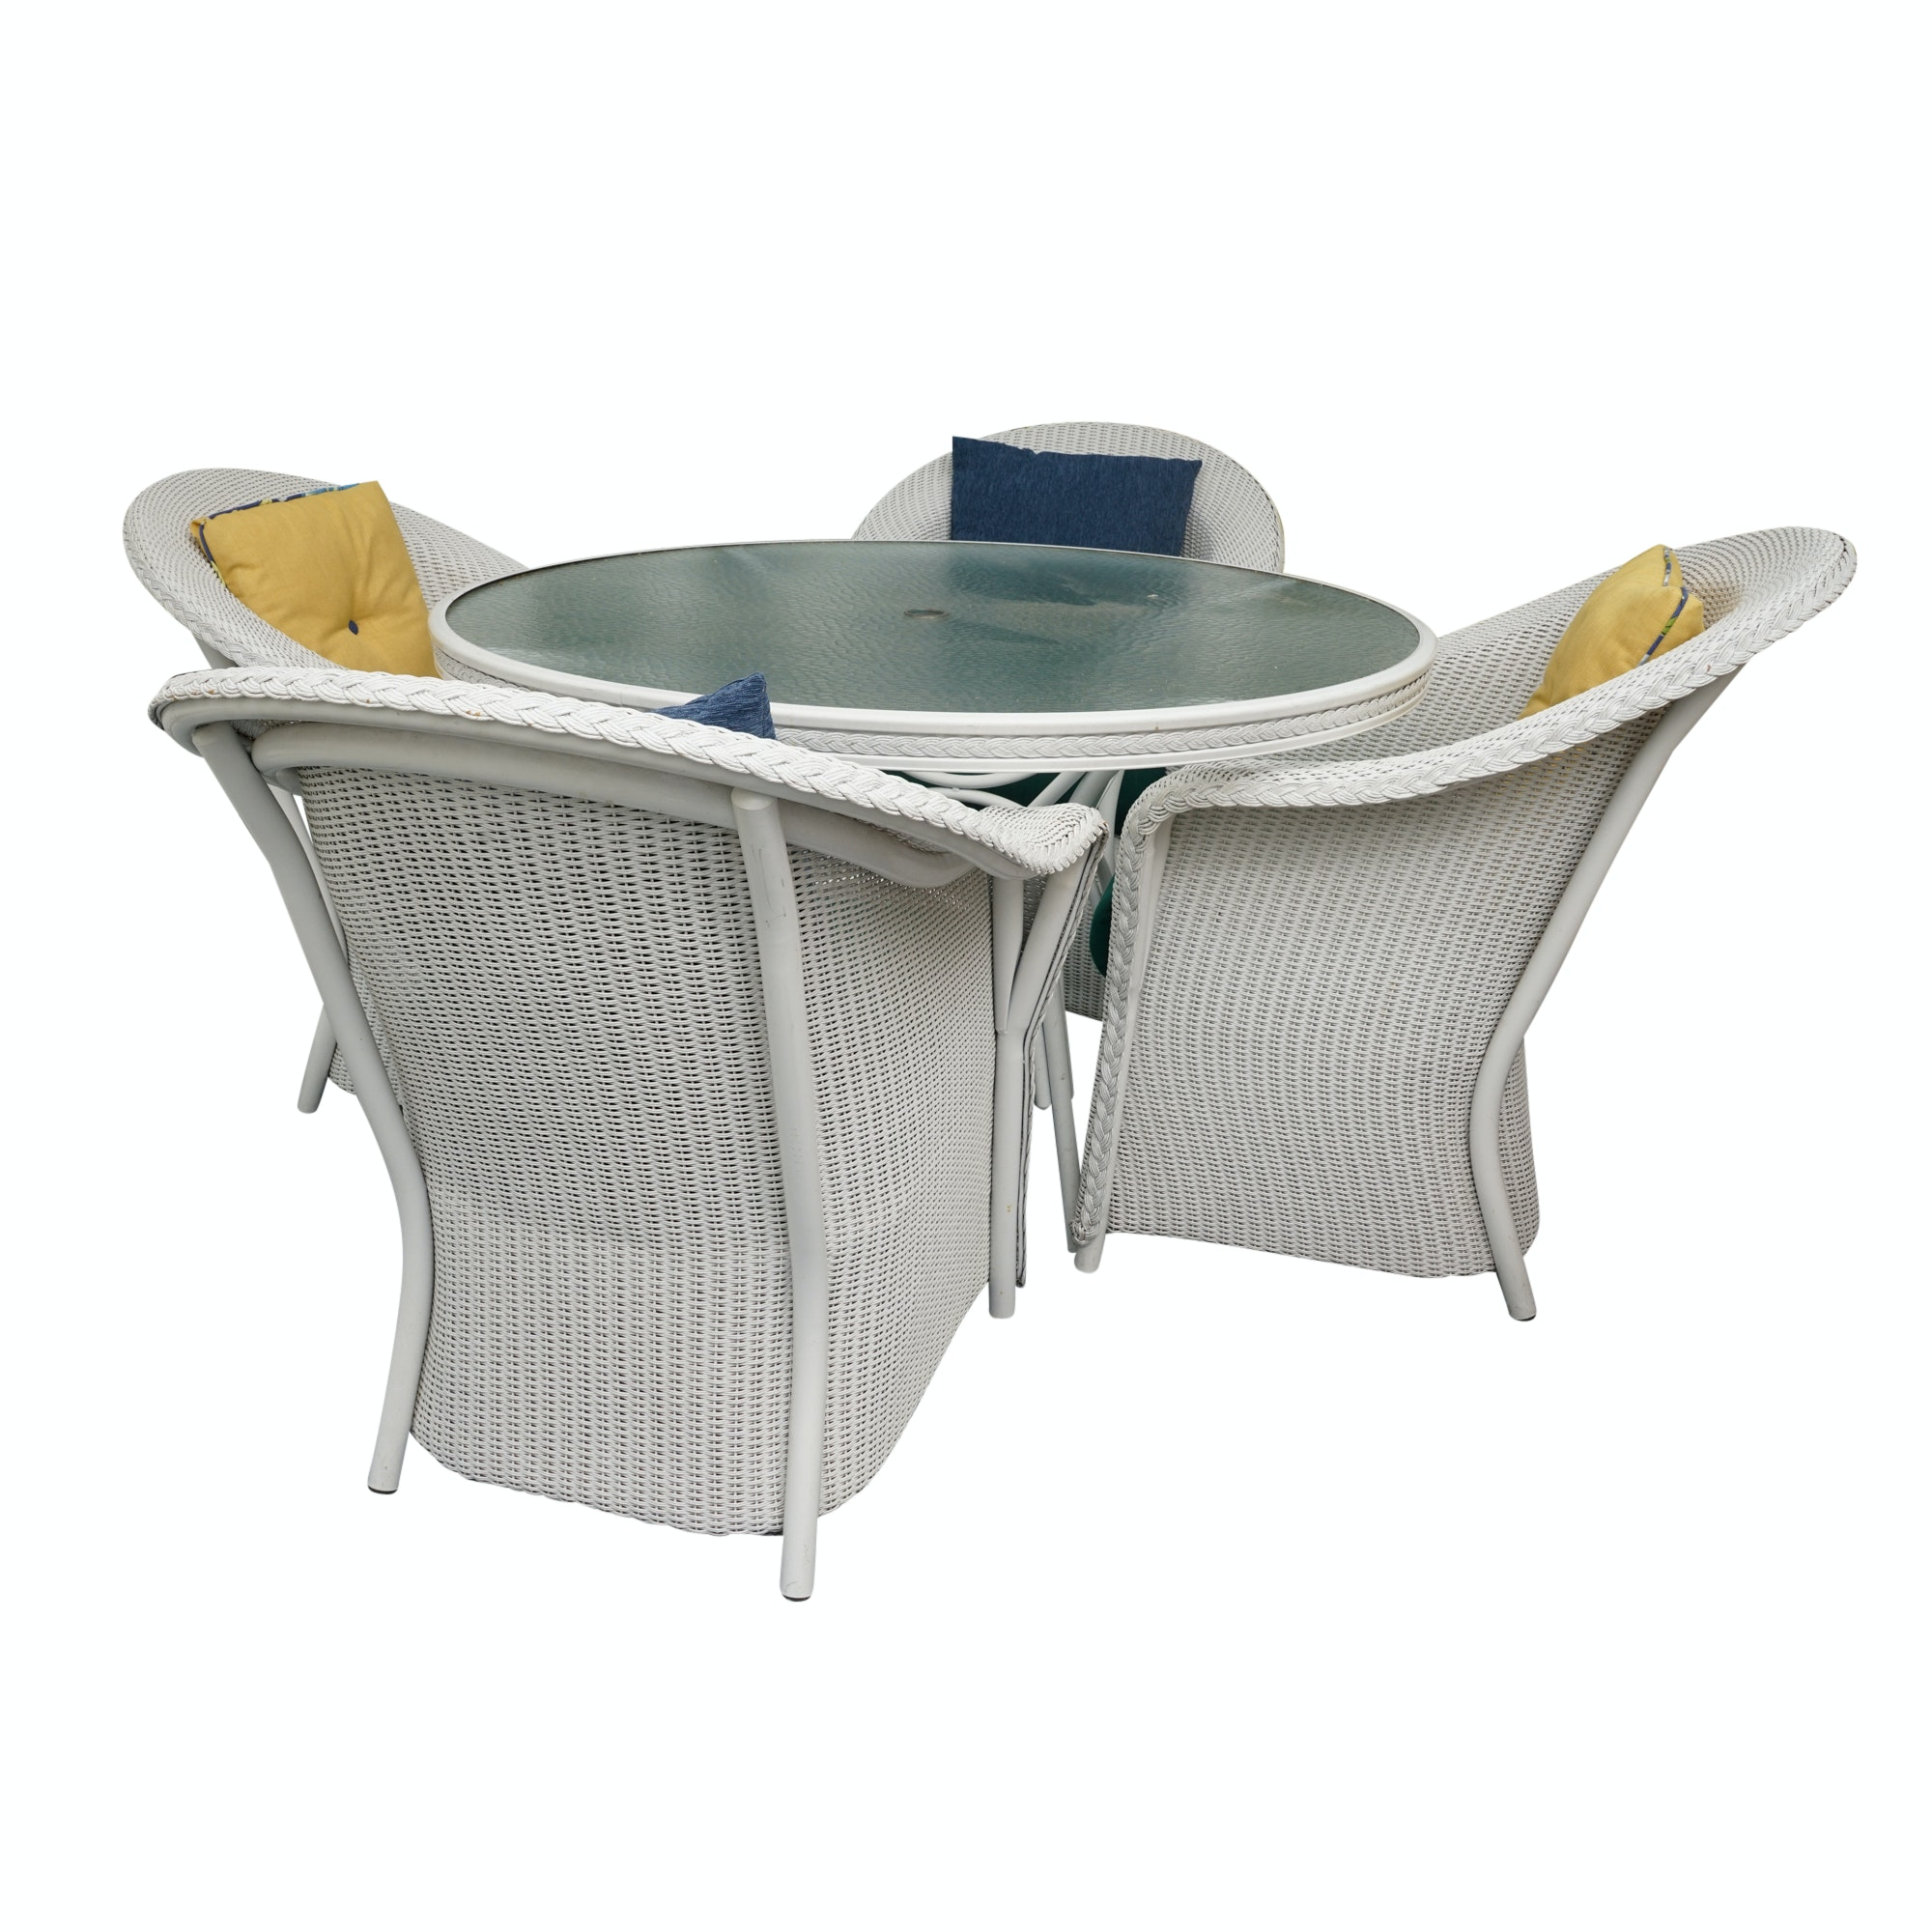 Glass Top Metal Patio Table with Wicker Armchairs